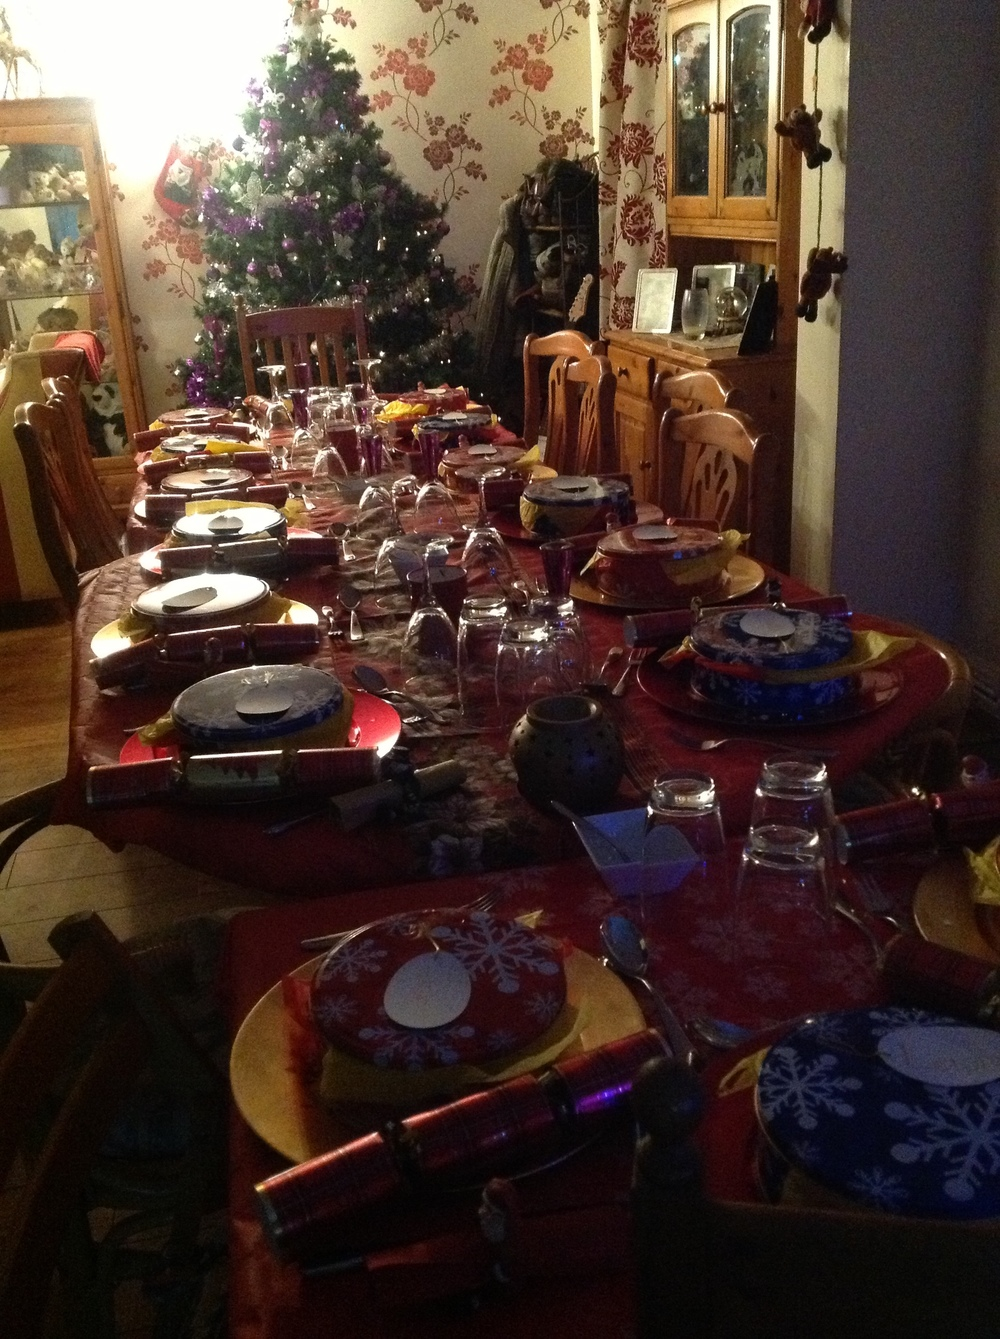 That delicious Christmas dinner at that stunningly laid table.